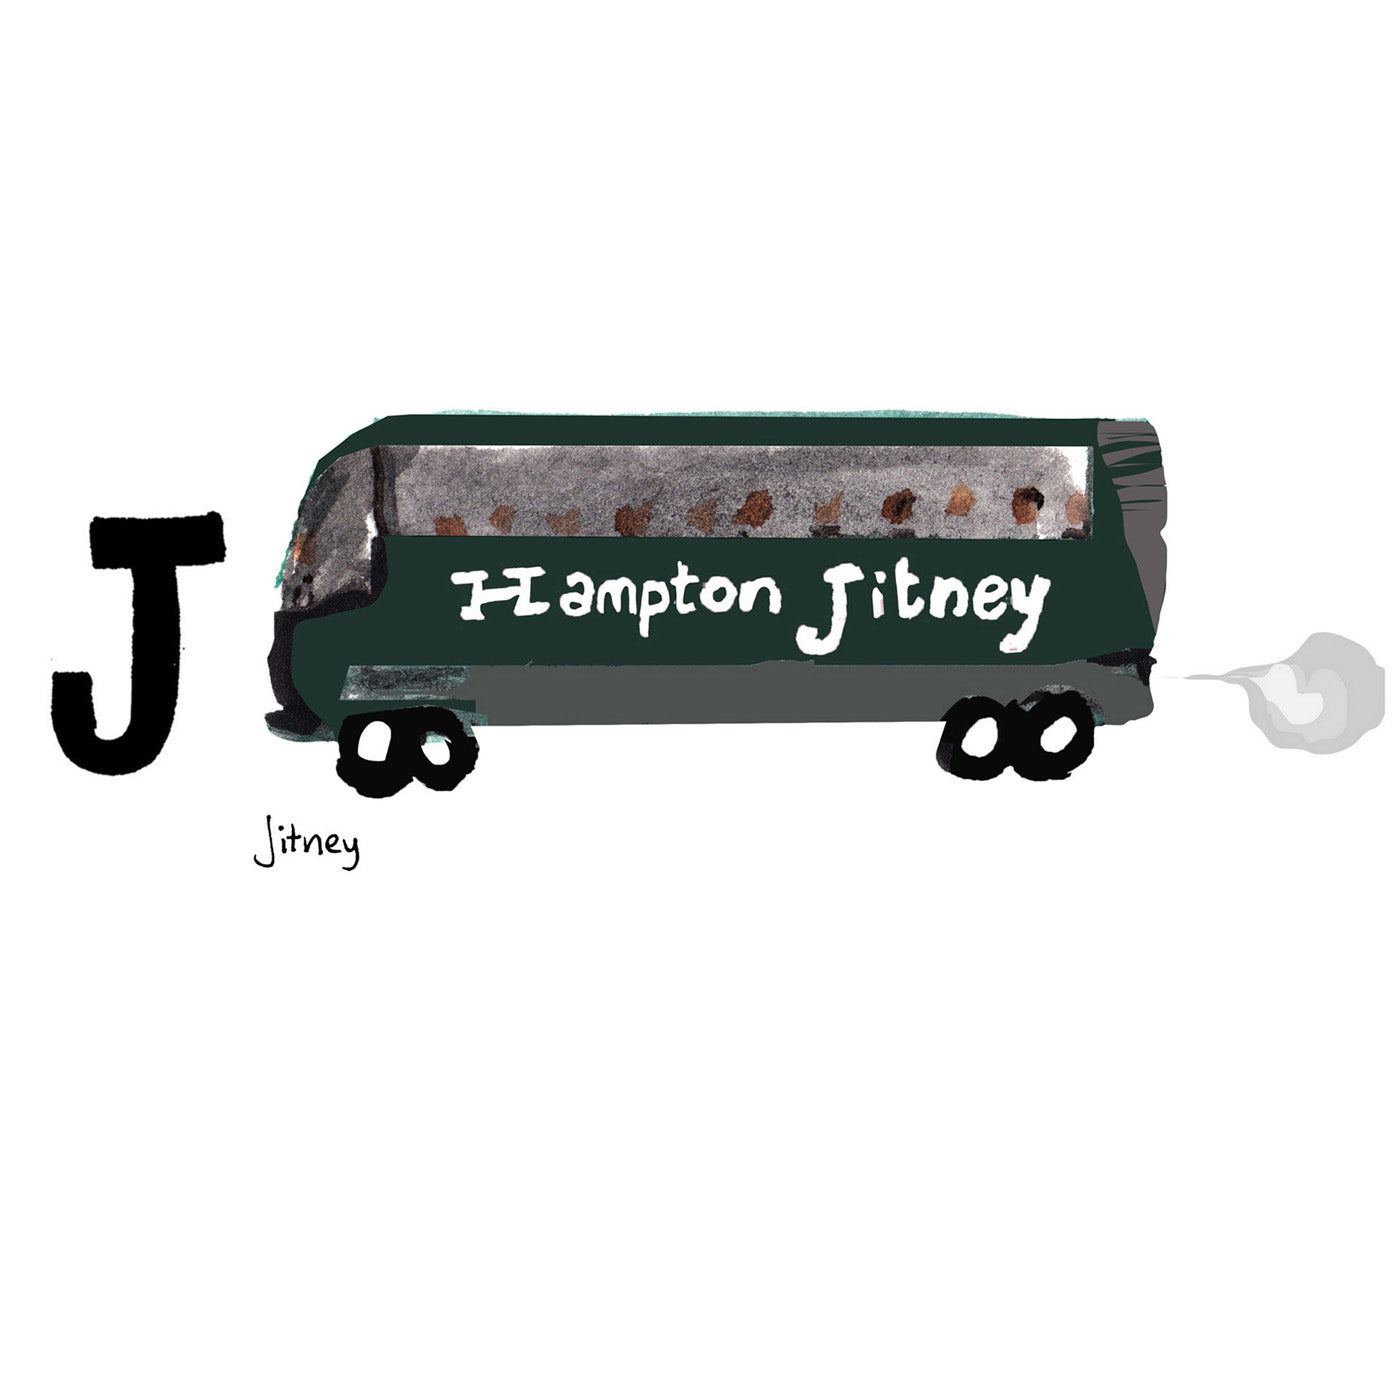 J is for Jitney. The Hampton Jitney is the legendary transportation service taking passengers from Manhattan out East to Long Island and the Hamptons. It also delivers pastries to and from the city.